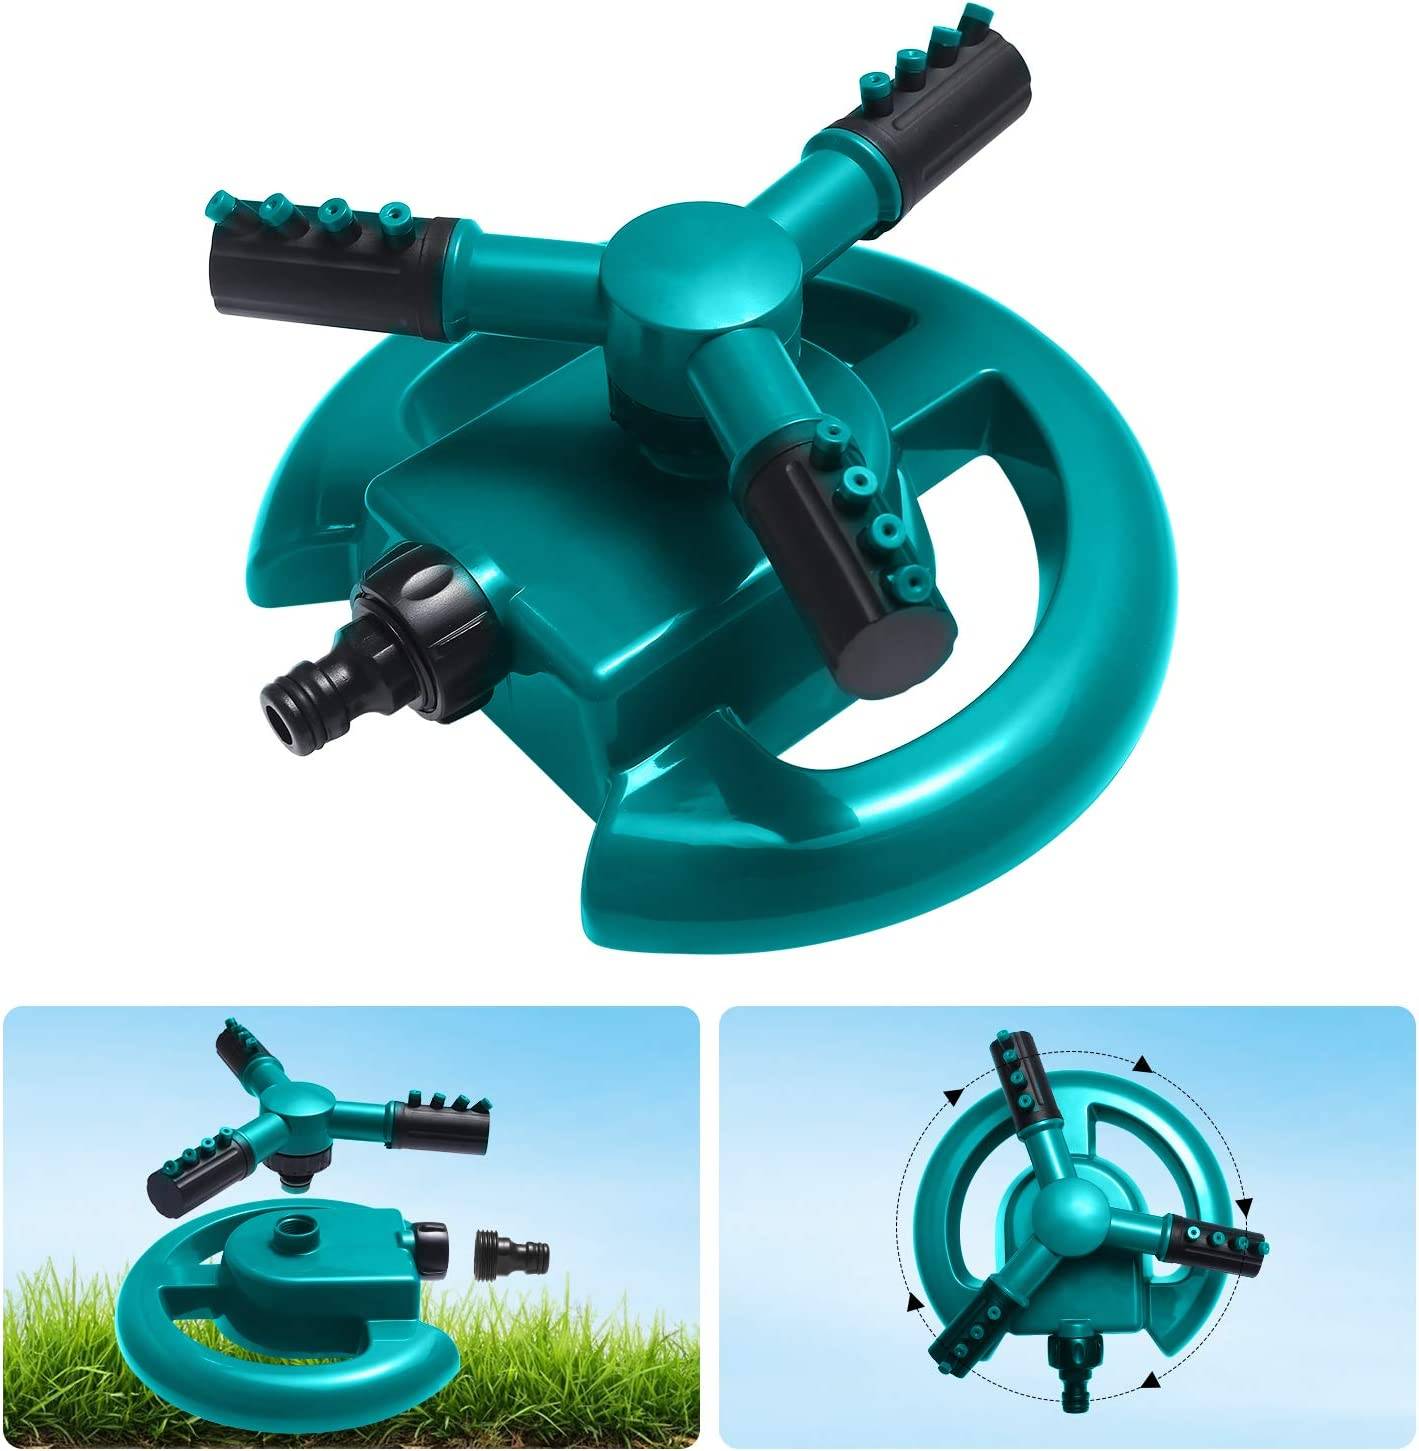 TBFUNNY Garden Sprinkler, 360° Automatic Rotating Lawn Sprinkler, Good Stability, Simple Pipe Connection, Can be Used for Lawn, Garden, Vegetable Garden, Etc